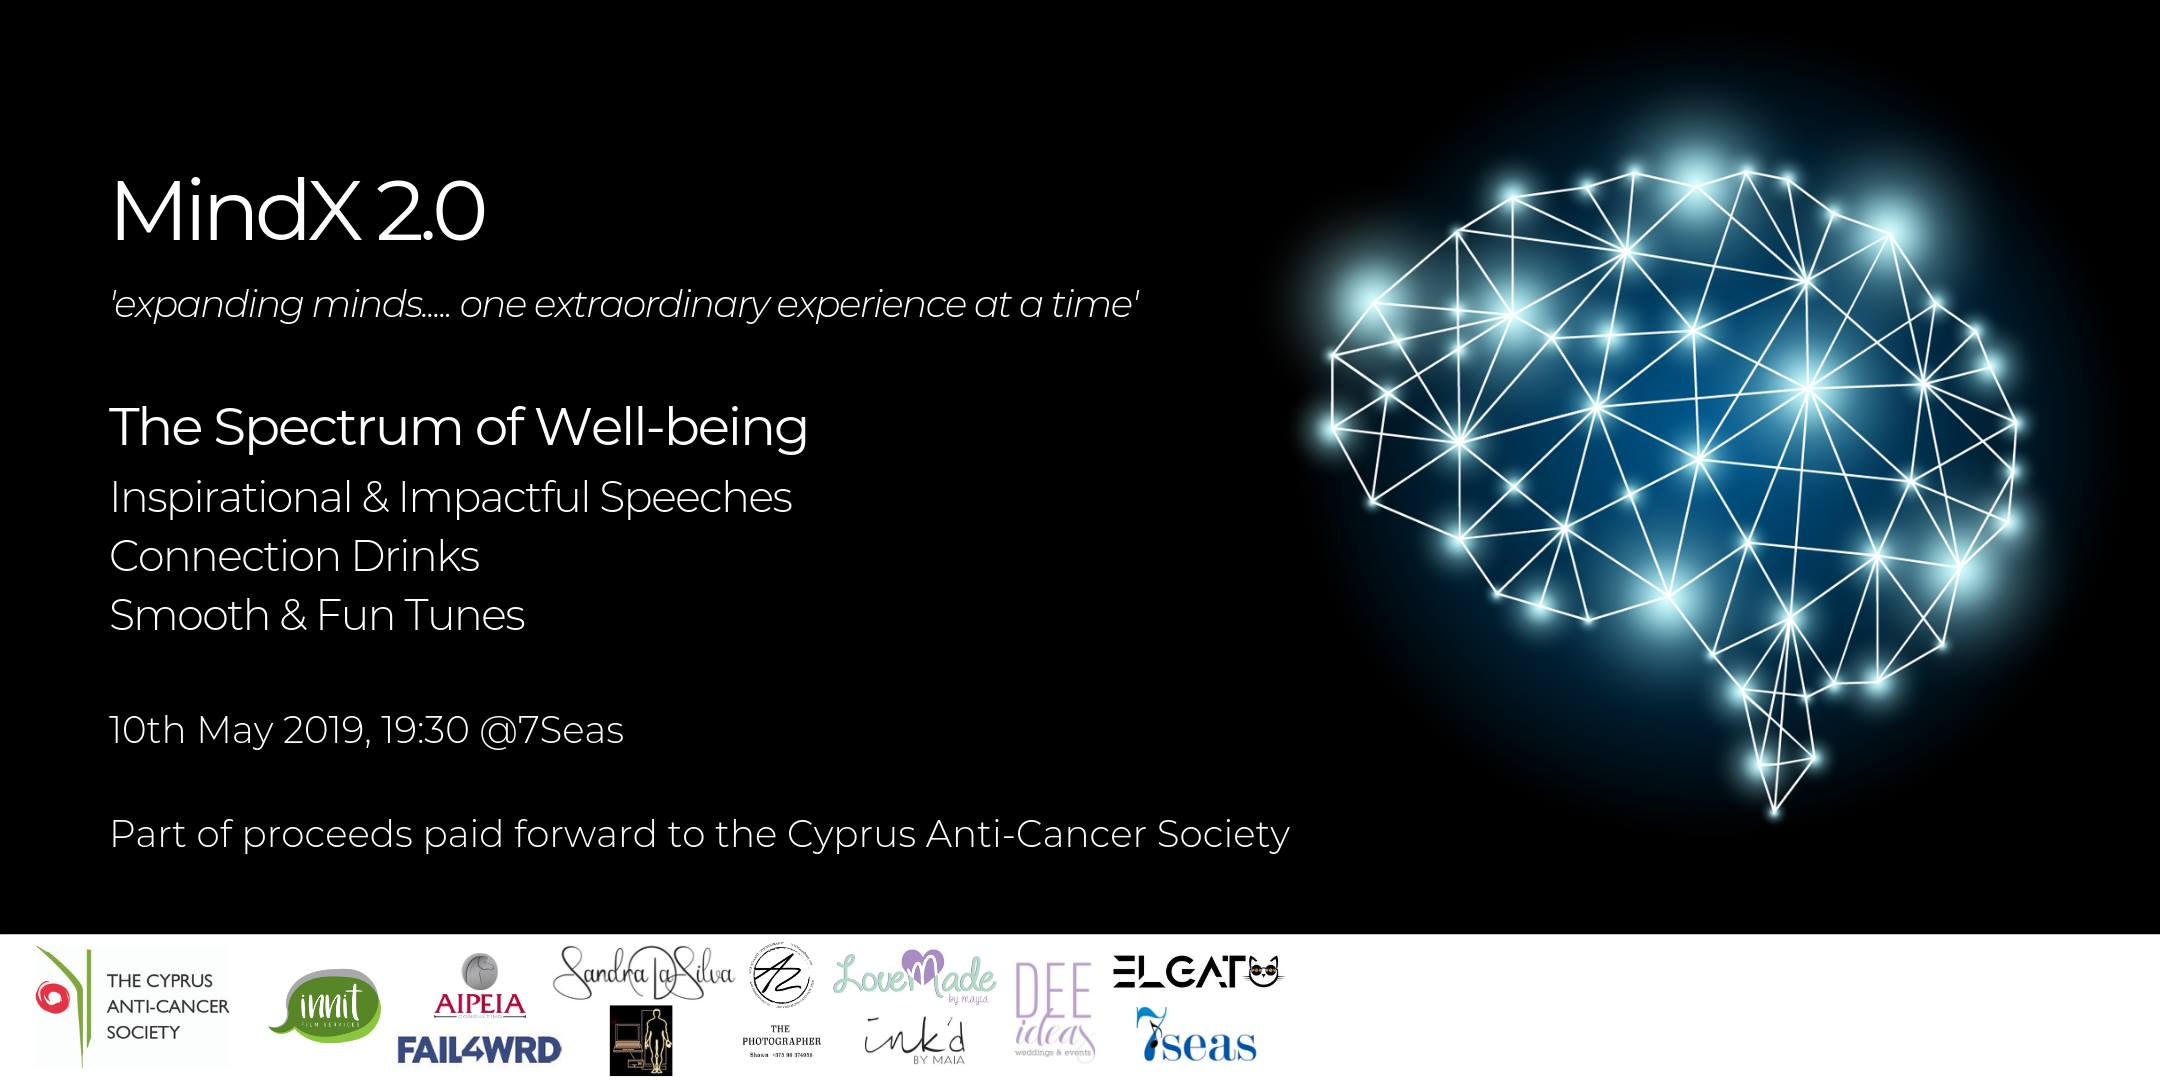 MindX 2.0 - 'expanding minds' cyprus cyprusinno events events